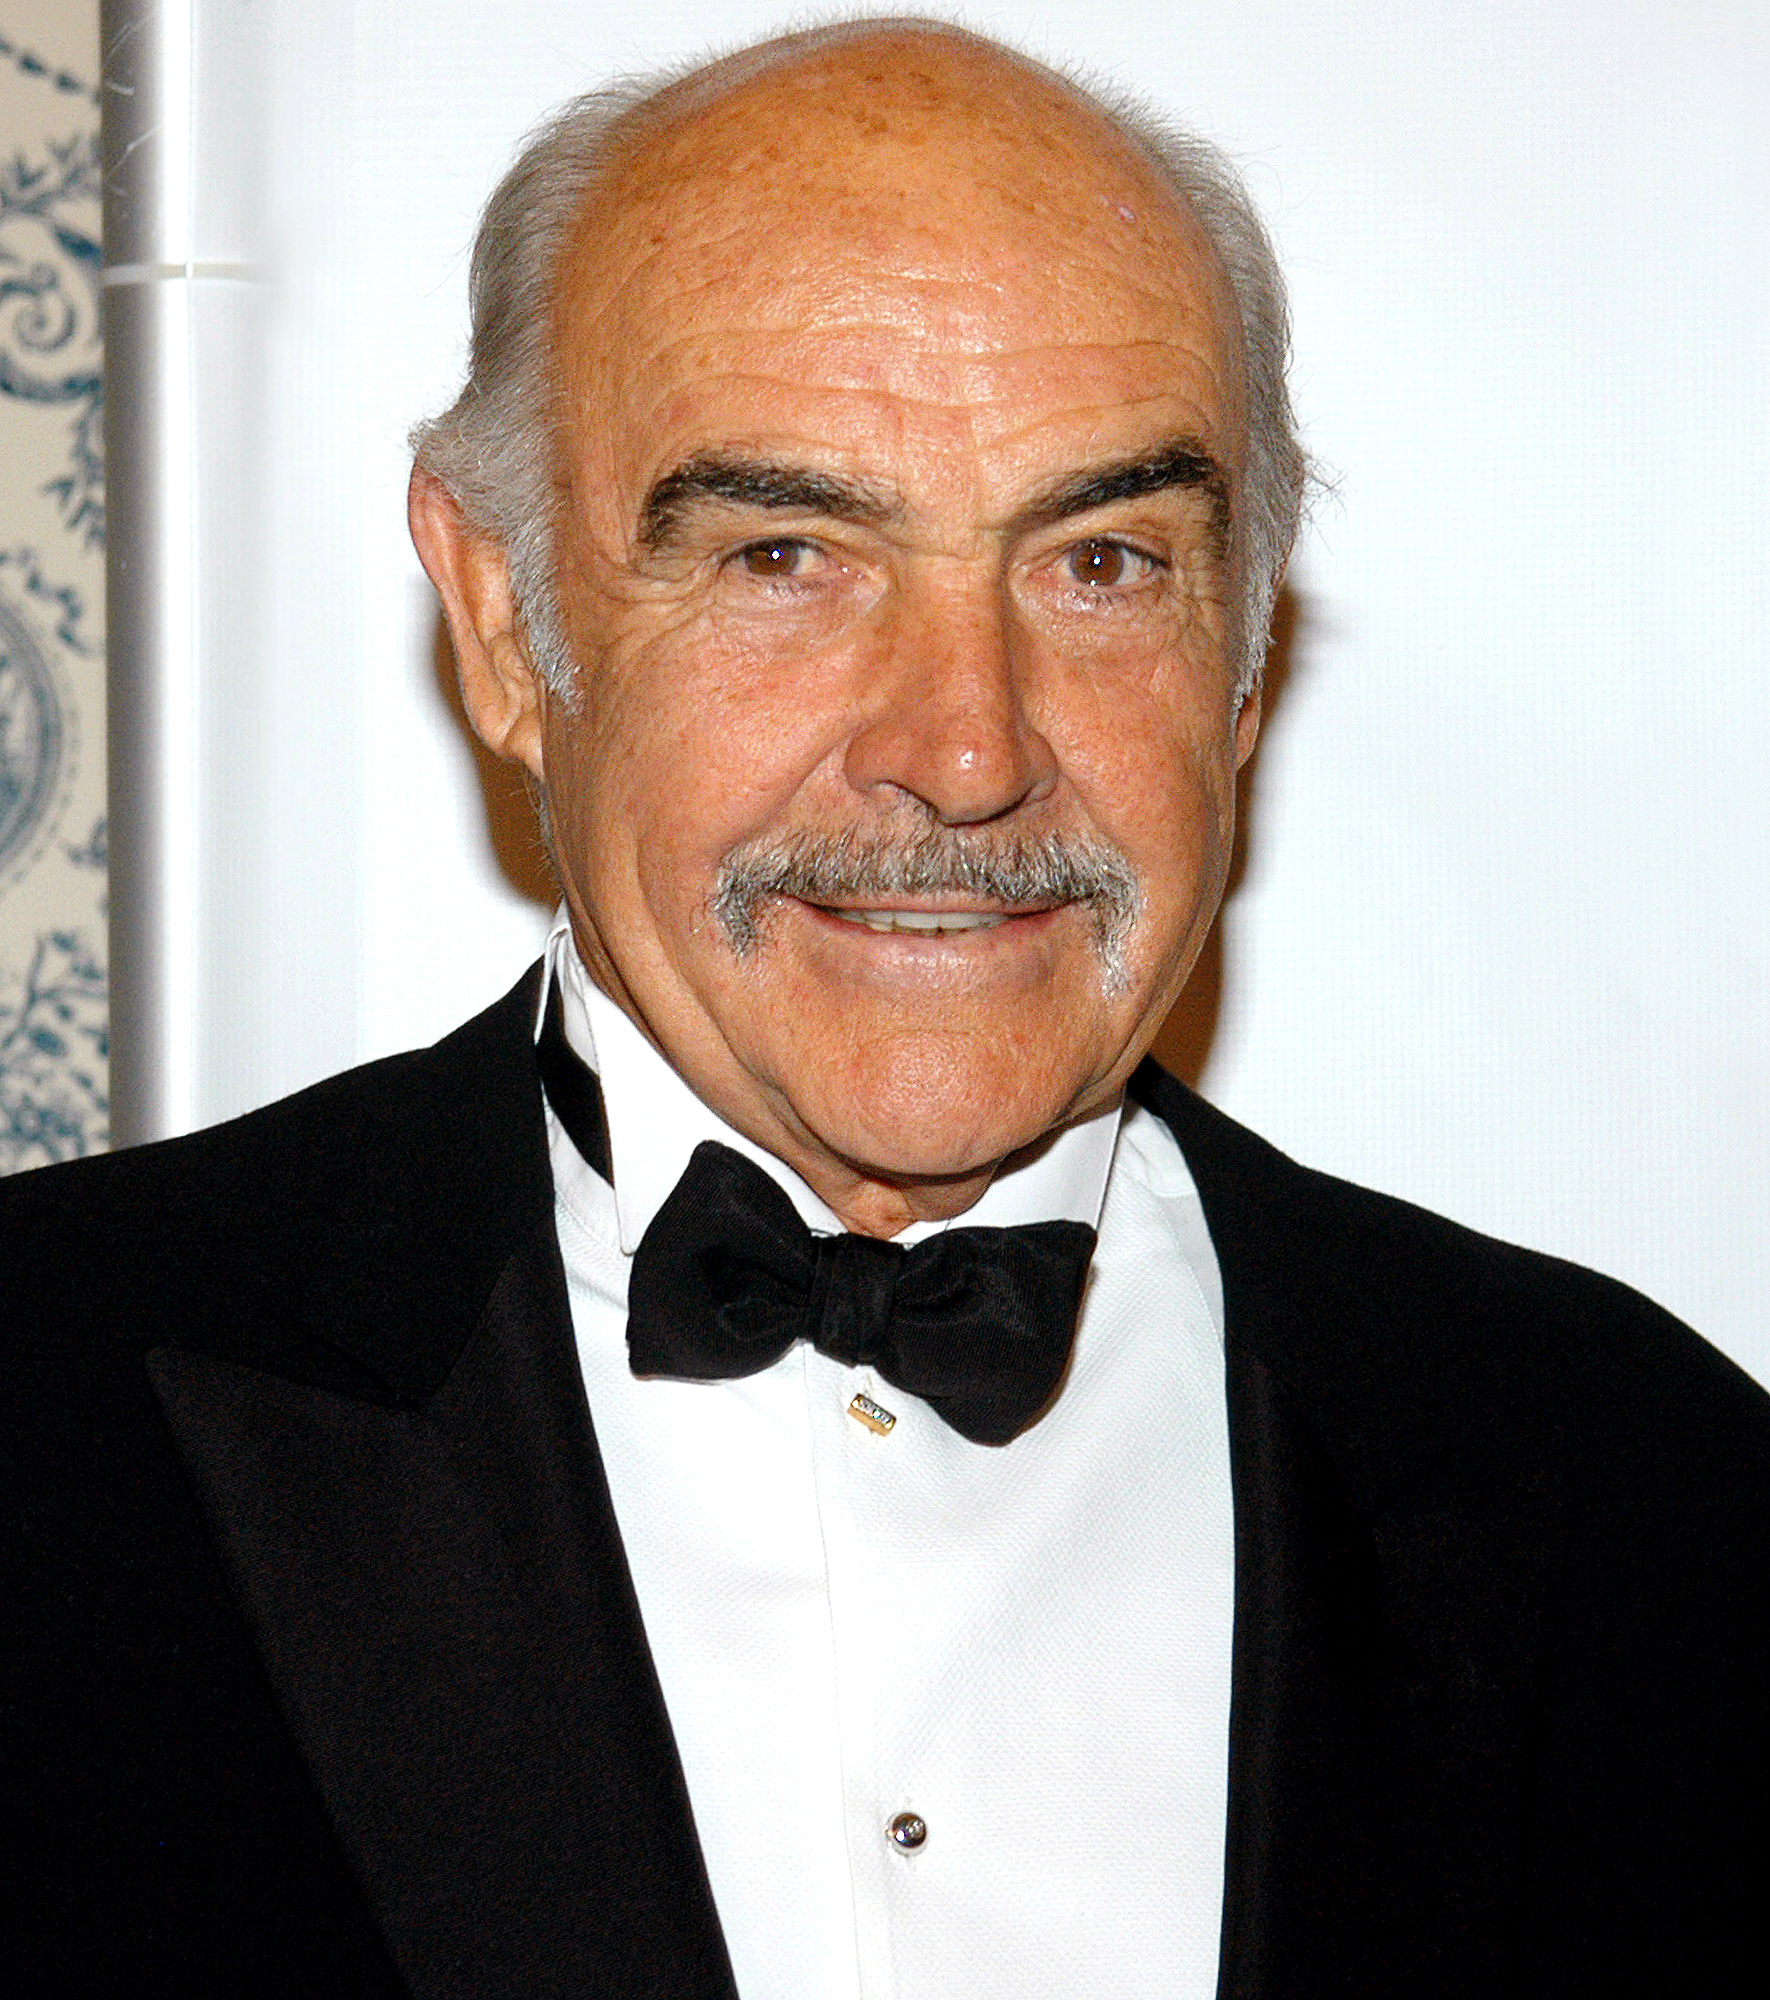 Sean Connery's Cause of Death Revealed Weeks After He Dies at Age 90